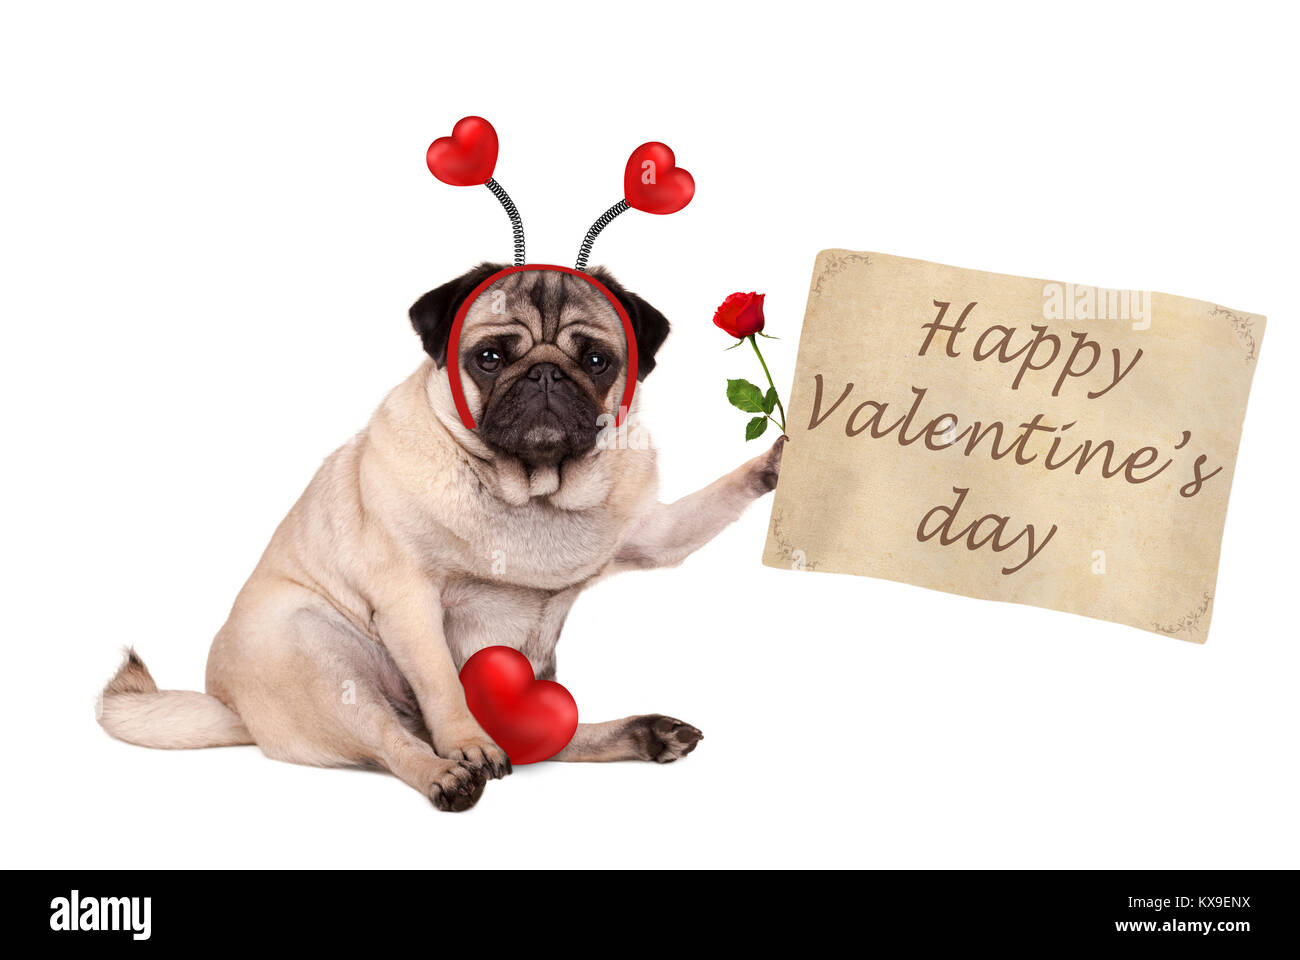 Valentine's day pug dog sitting down, holding up paper scroll, wearing diadem with hearts, isolated on white - Stock Image